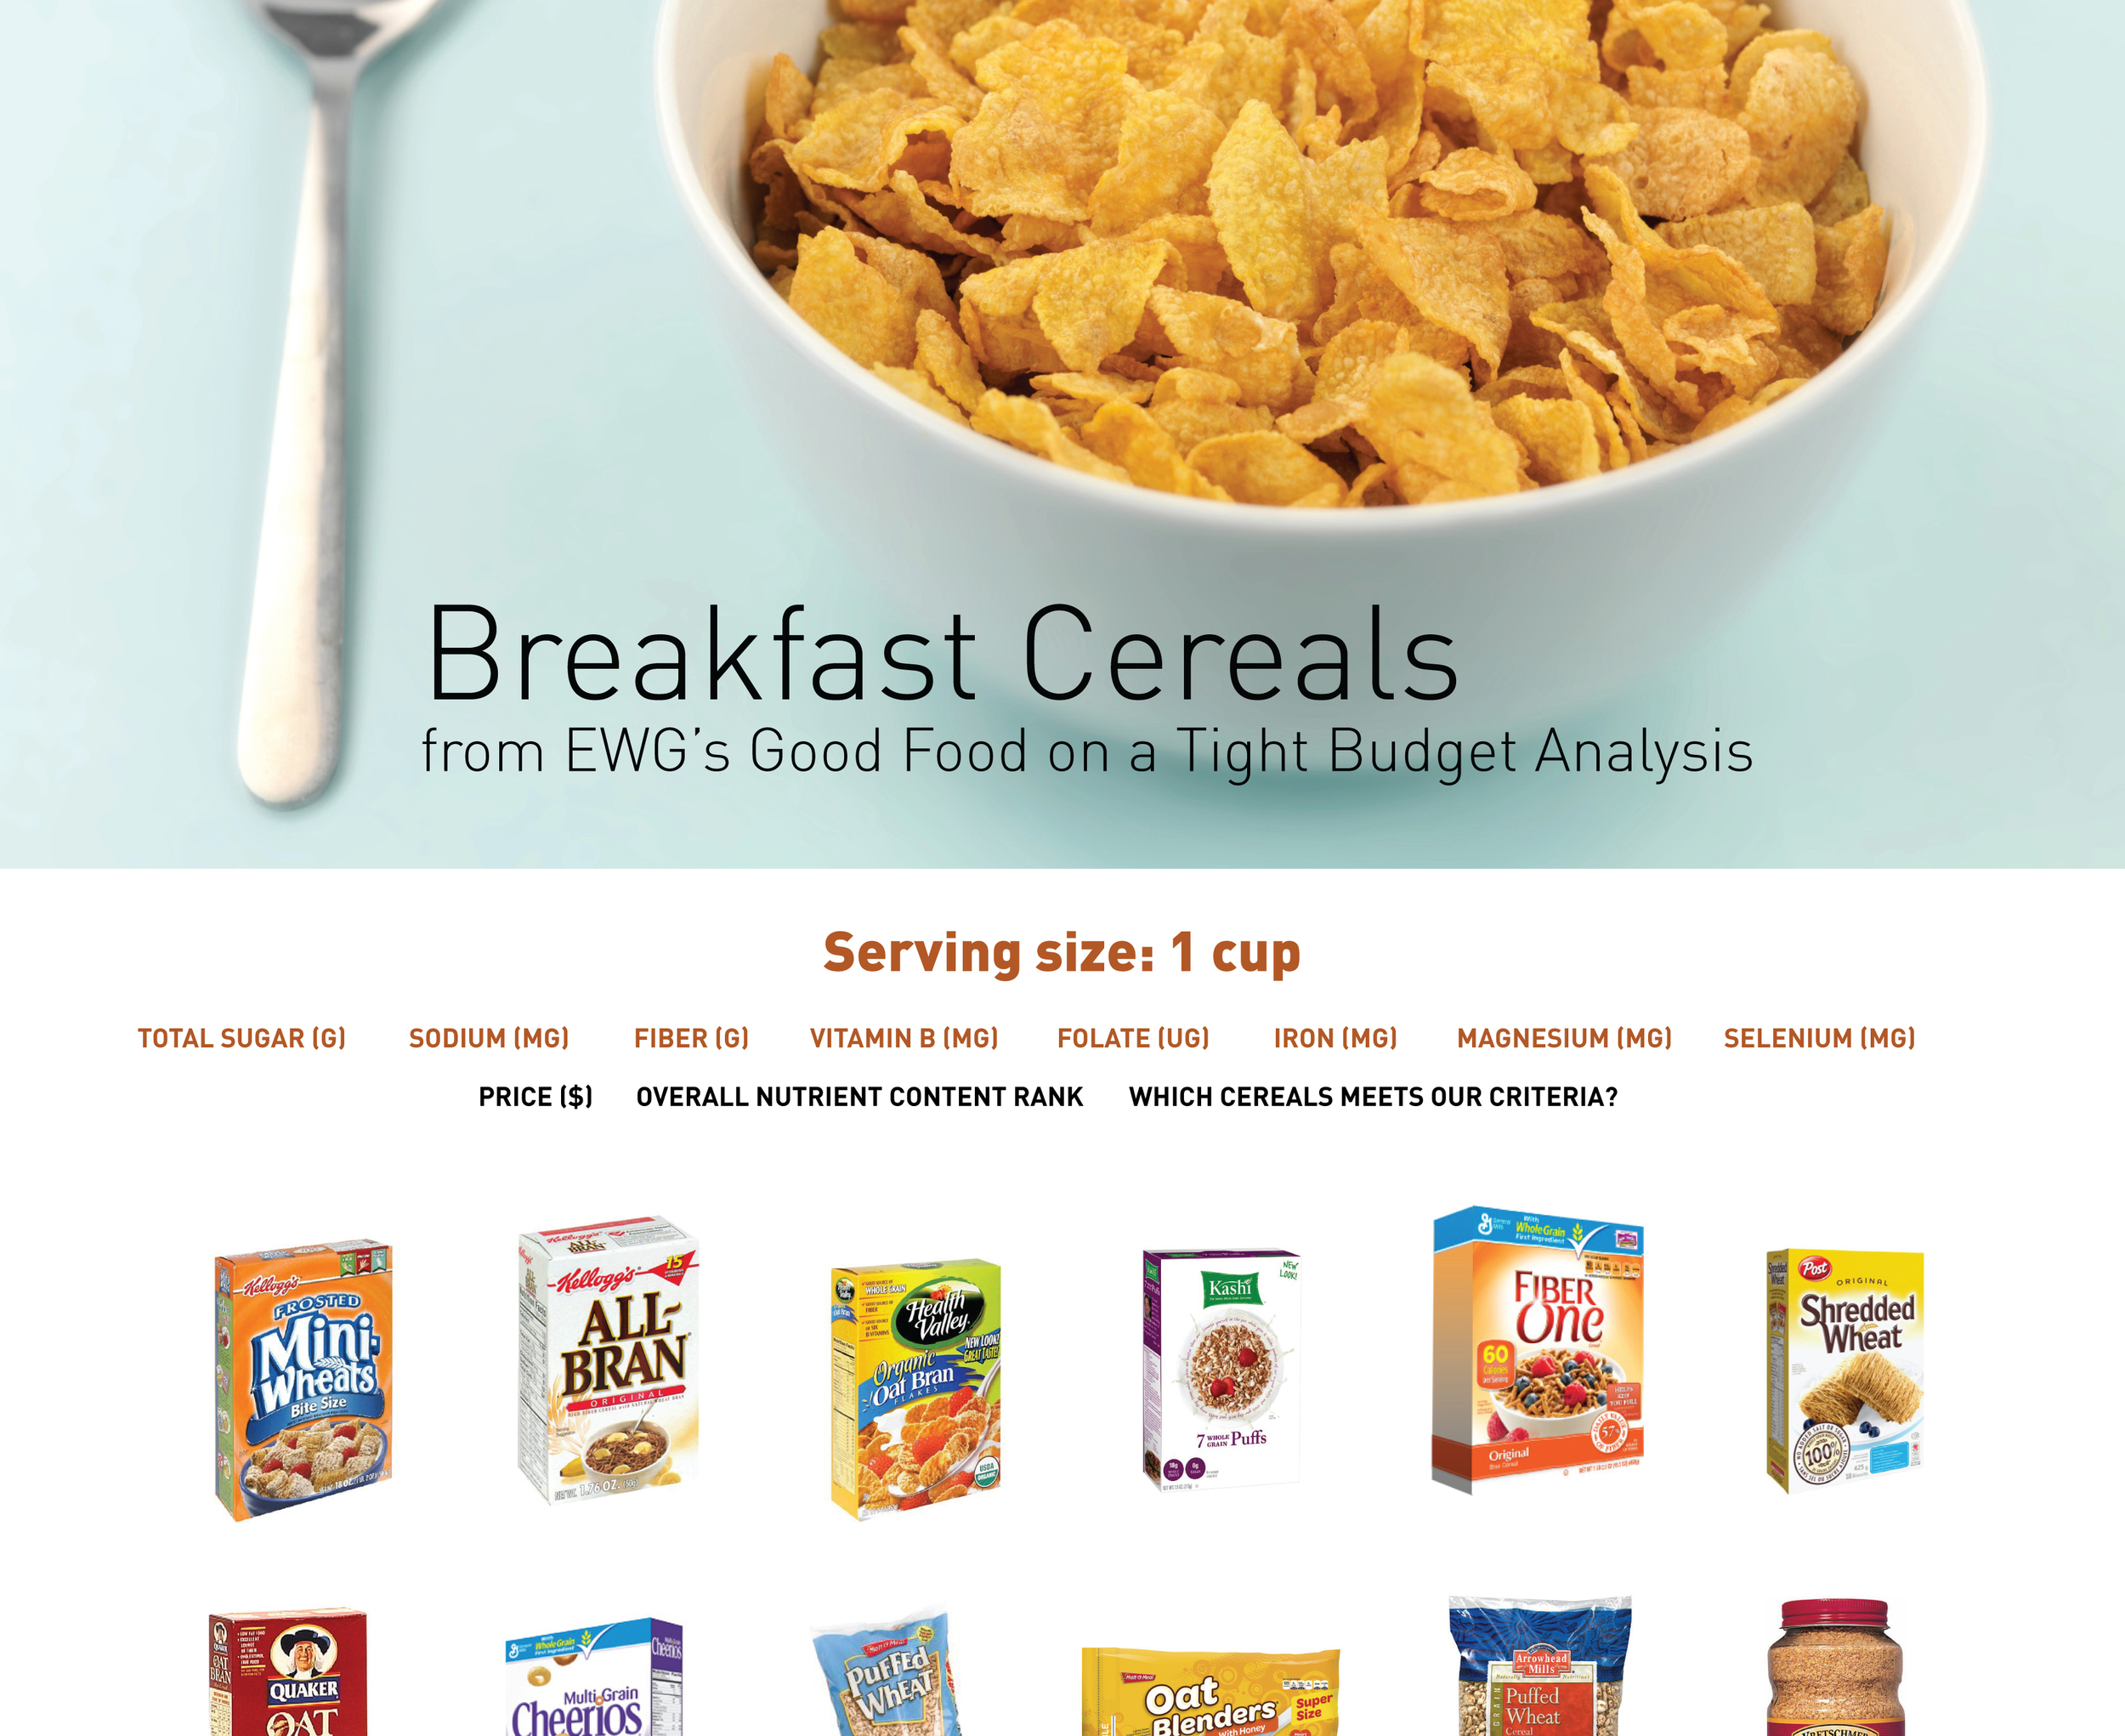 The responsive website design to visualize breakfast cereals according to the ranking of EWG's 2012 Good Food on a Tight Budget guide.